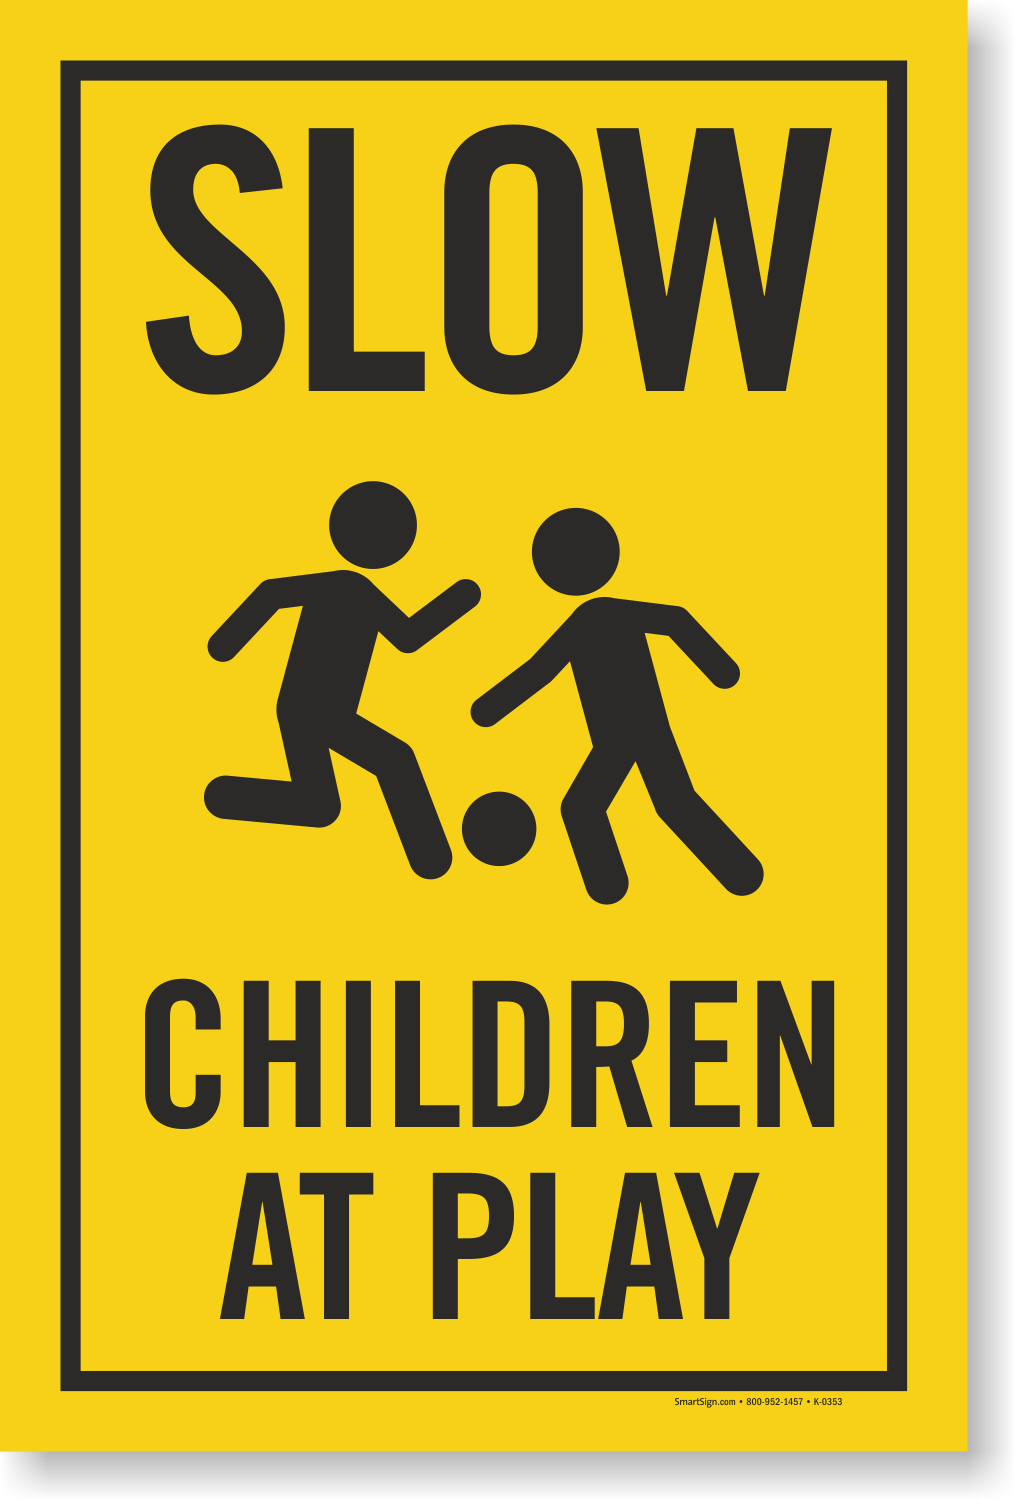 Slow Children At Play Sign | Kids Playing Signs, SKU - K-0353